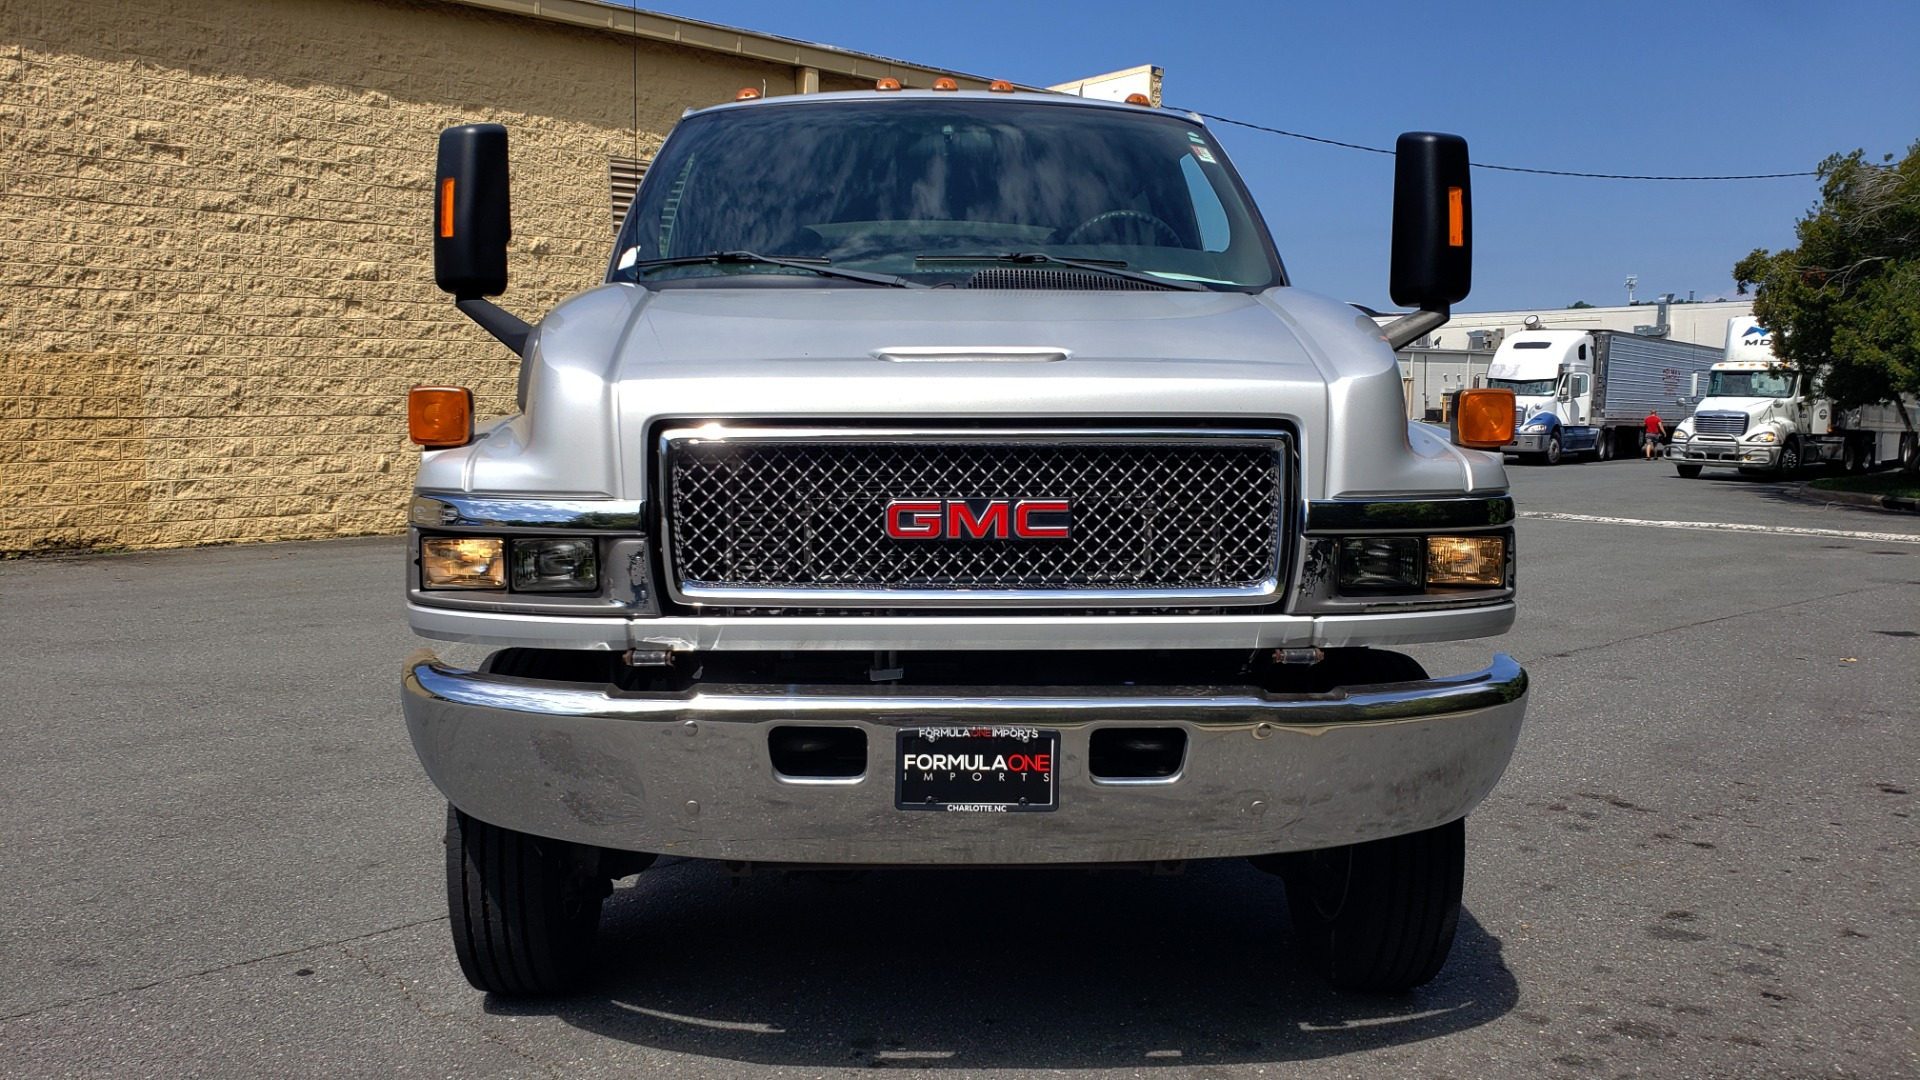 Used 2006 GMC TC4500 CREWCAB 4X4 6.6L DURAMAX / ALLISON TRANS / A/C / CRUISE CONTROL for sale Sold at Formula Imports in Charlotte NC 28227 13